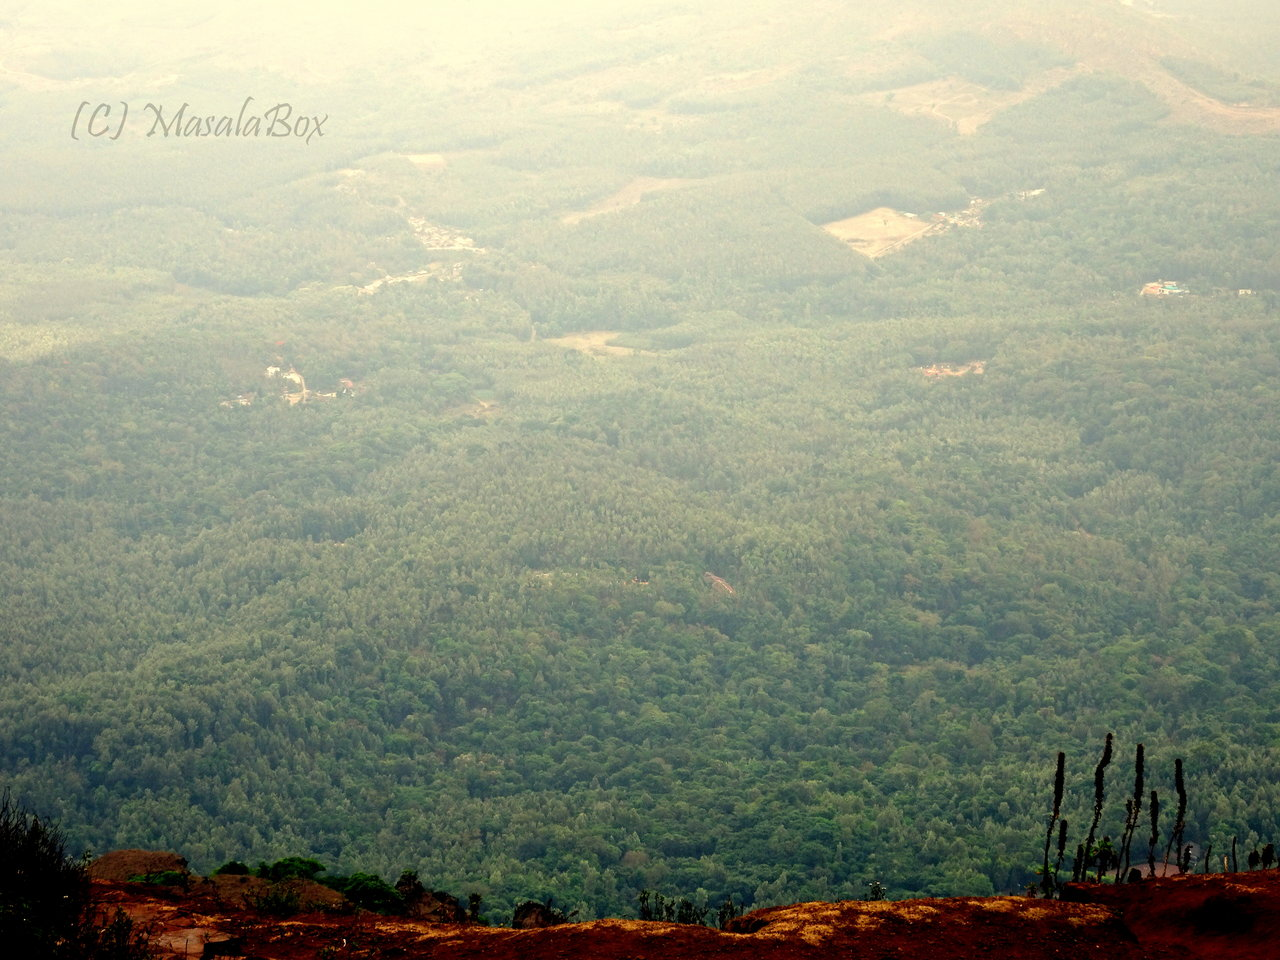 Chikmagalur - Mullayanagiri view from top